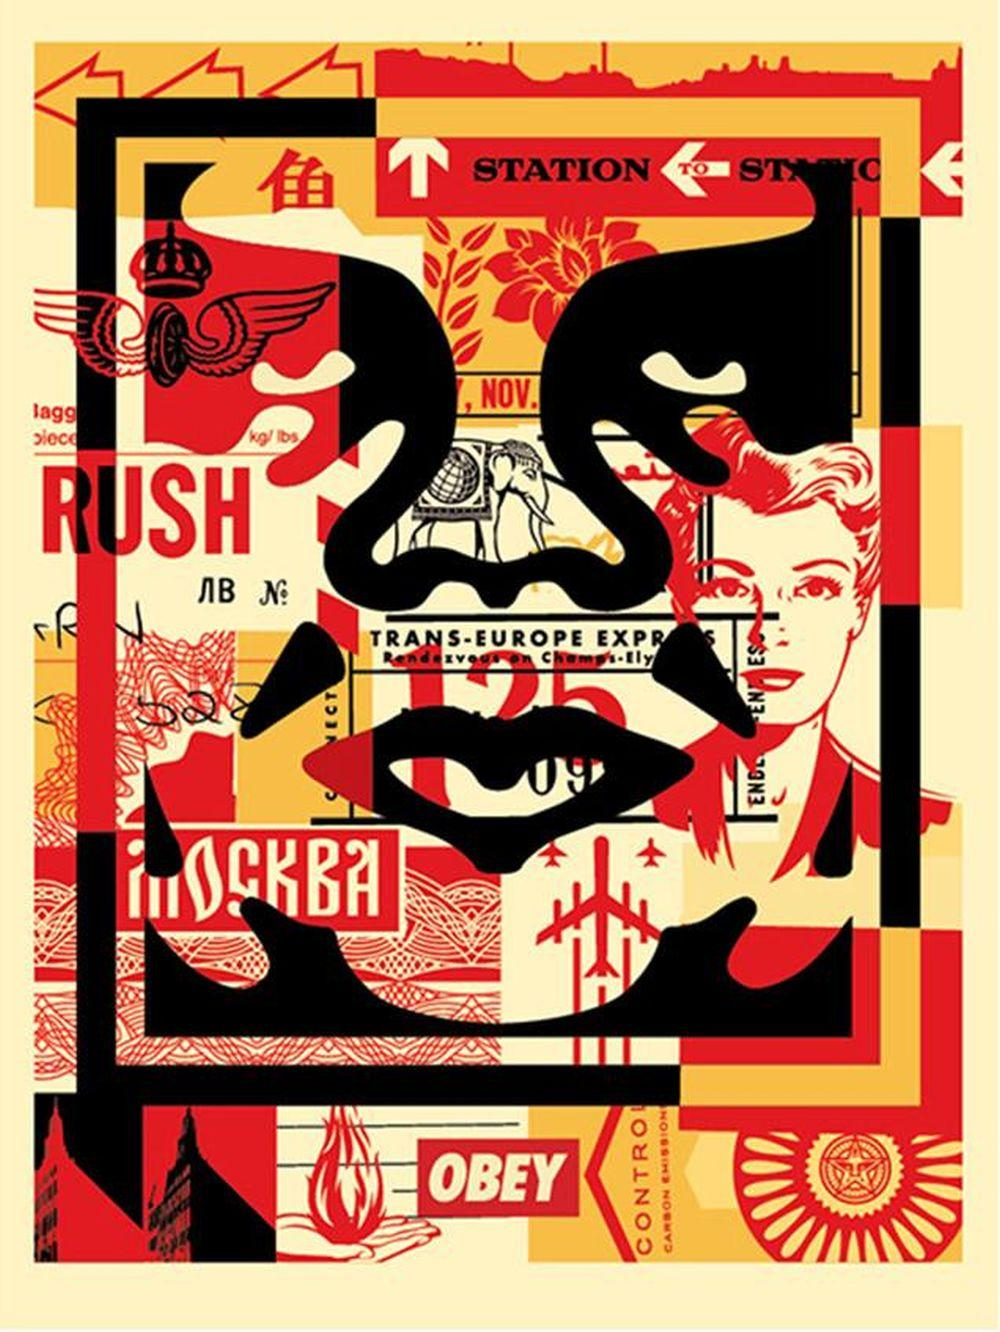 Shepard Fairey (OBEY) - Obey 3 Face Collage